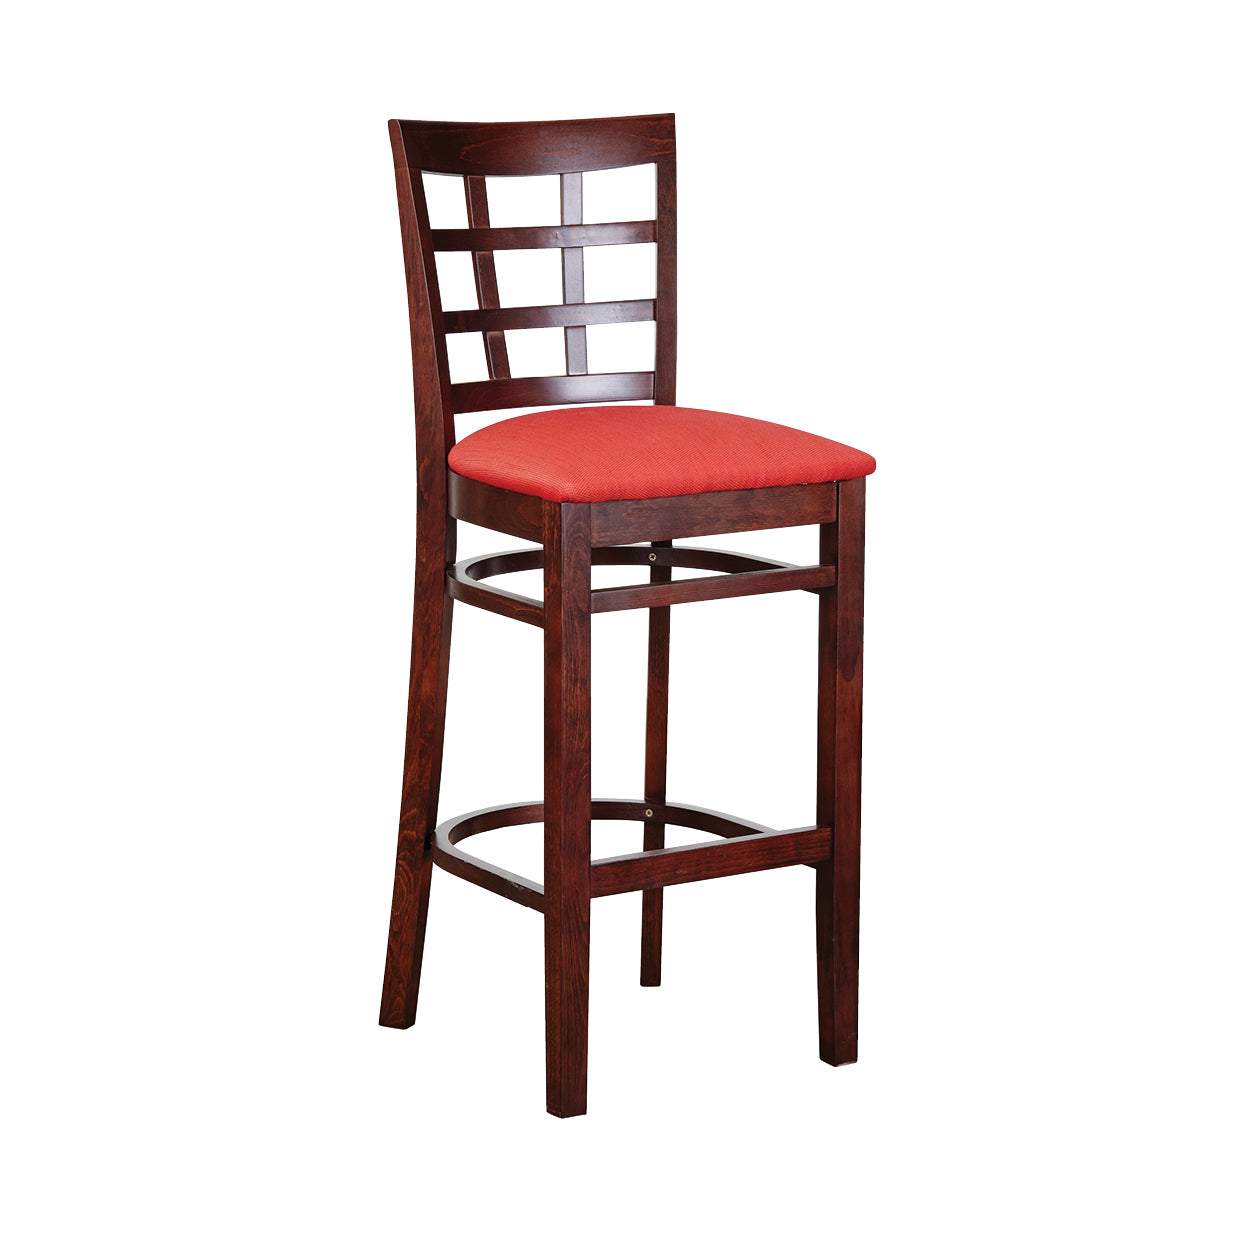 Hedcor bar chair